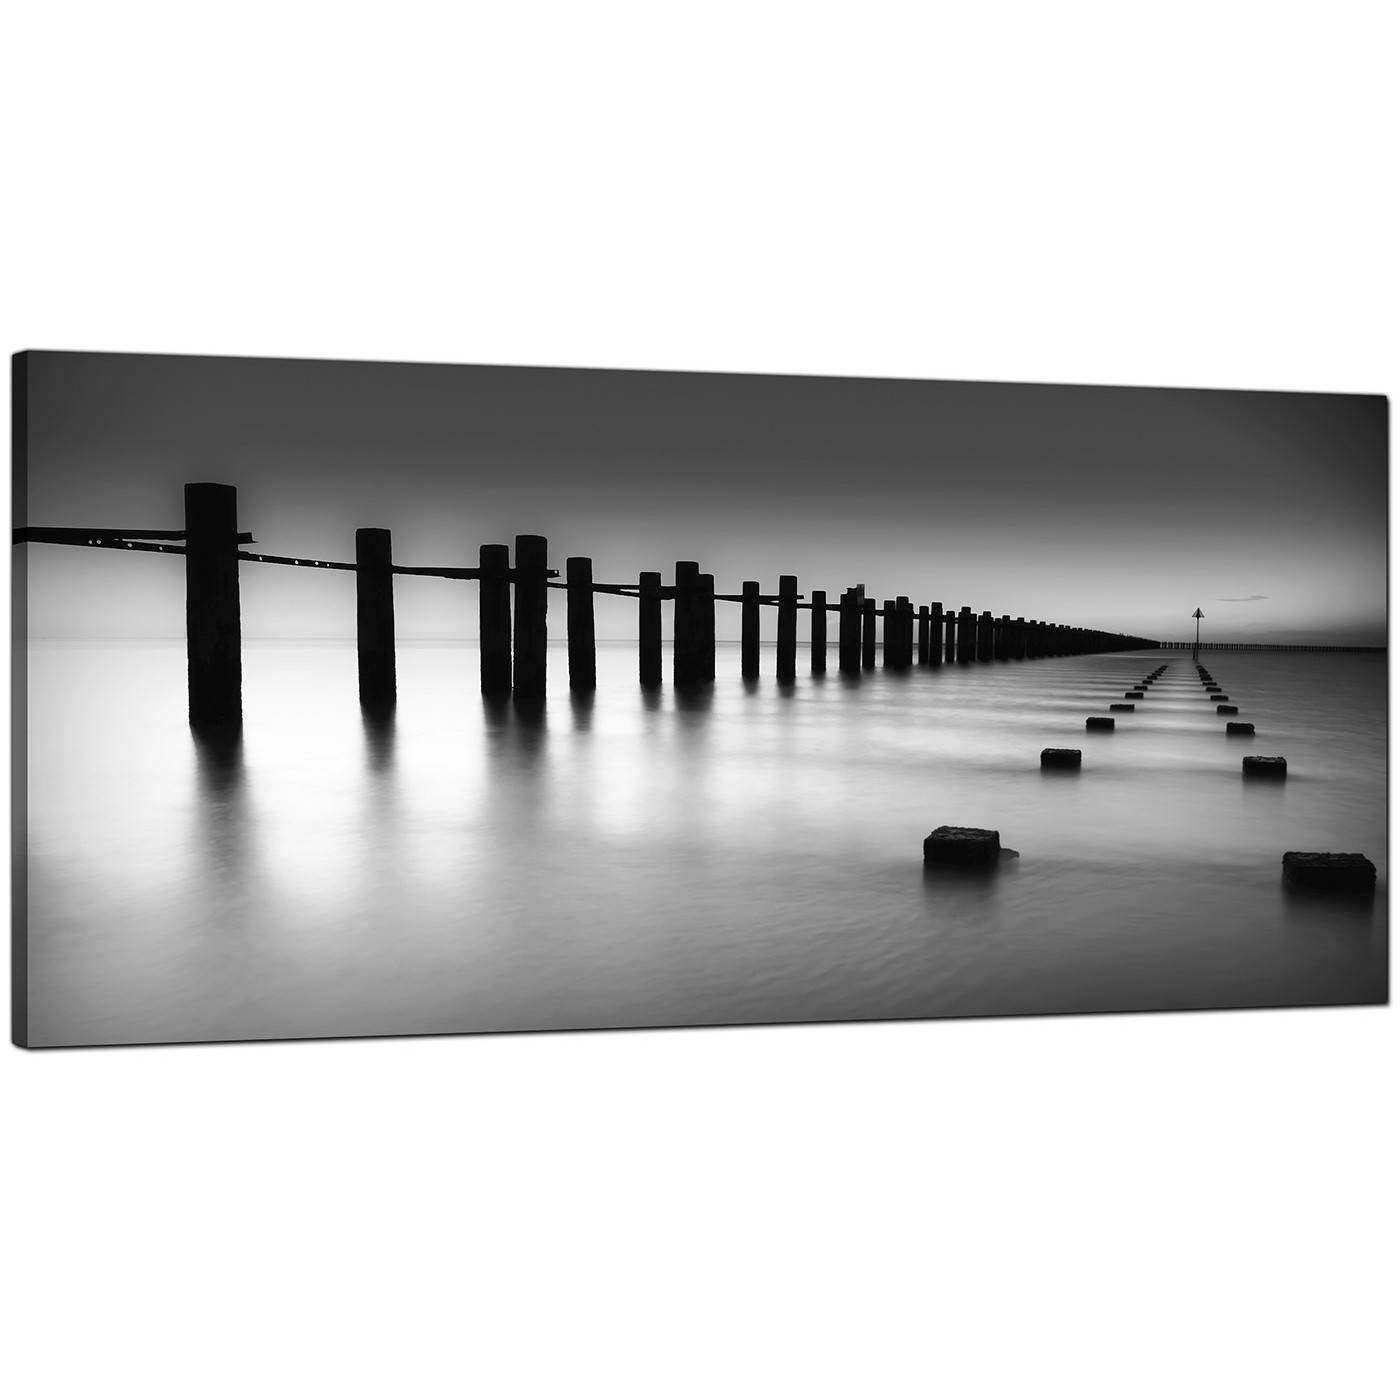 Modern Black And White Canvas Art Of The Sea Regarding Most Popular Large Black And White Wall Art (Gallery 9 of 20)